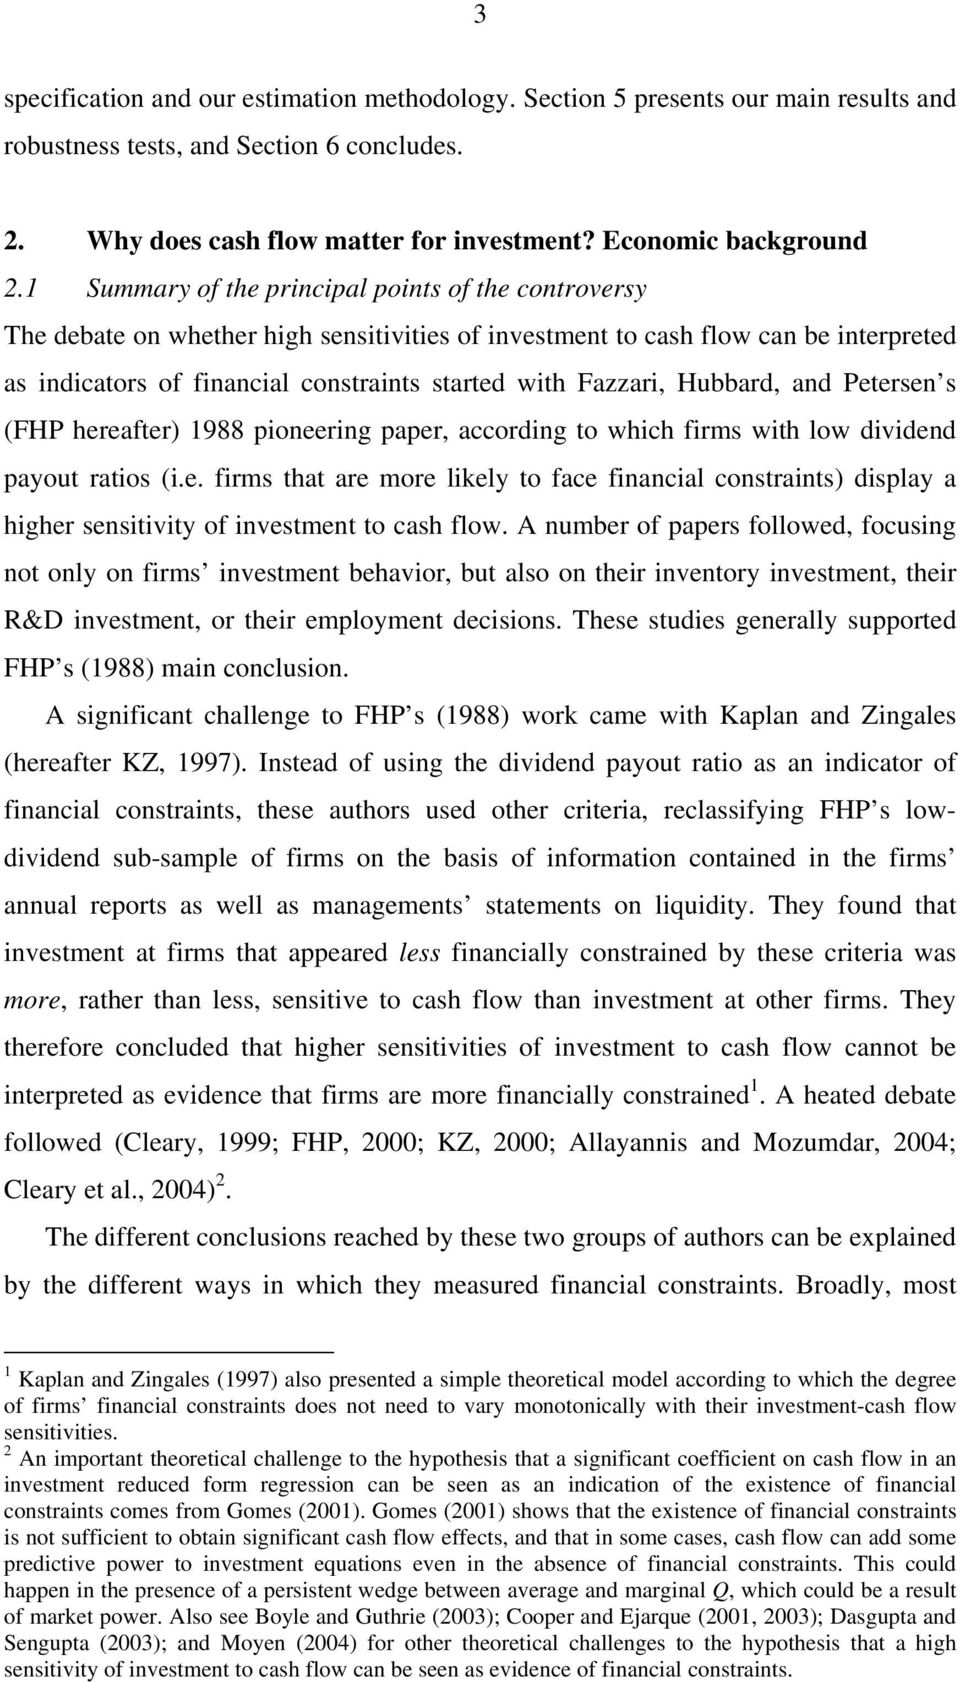 Fazzari, Hubbard, and Petersen s (FHP hereafter) 1988 pioneering paper, according to which firms with low dividend payout ratios (i.e. firms that are more likely to face financial constraints) display a higher sensitivity of investment to cash flow.